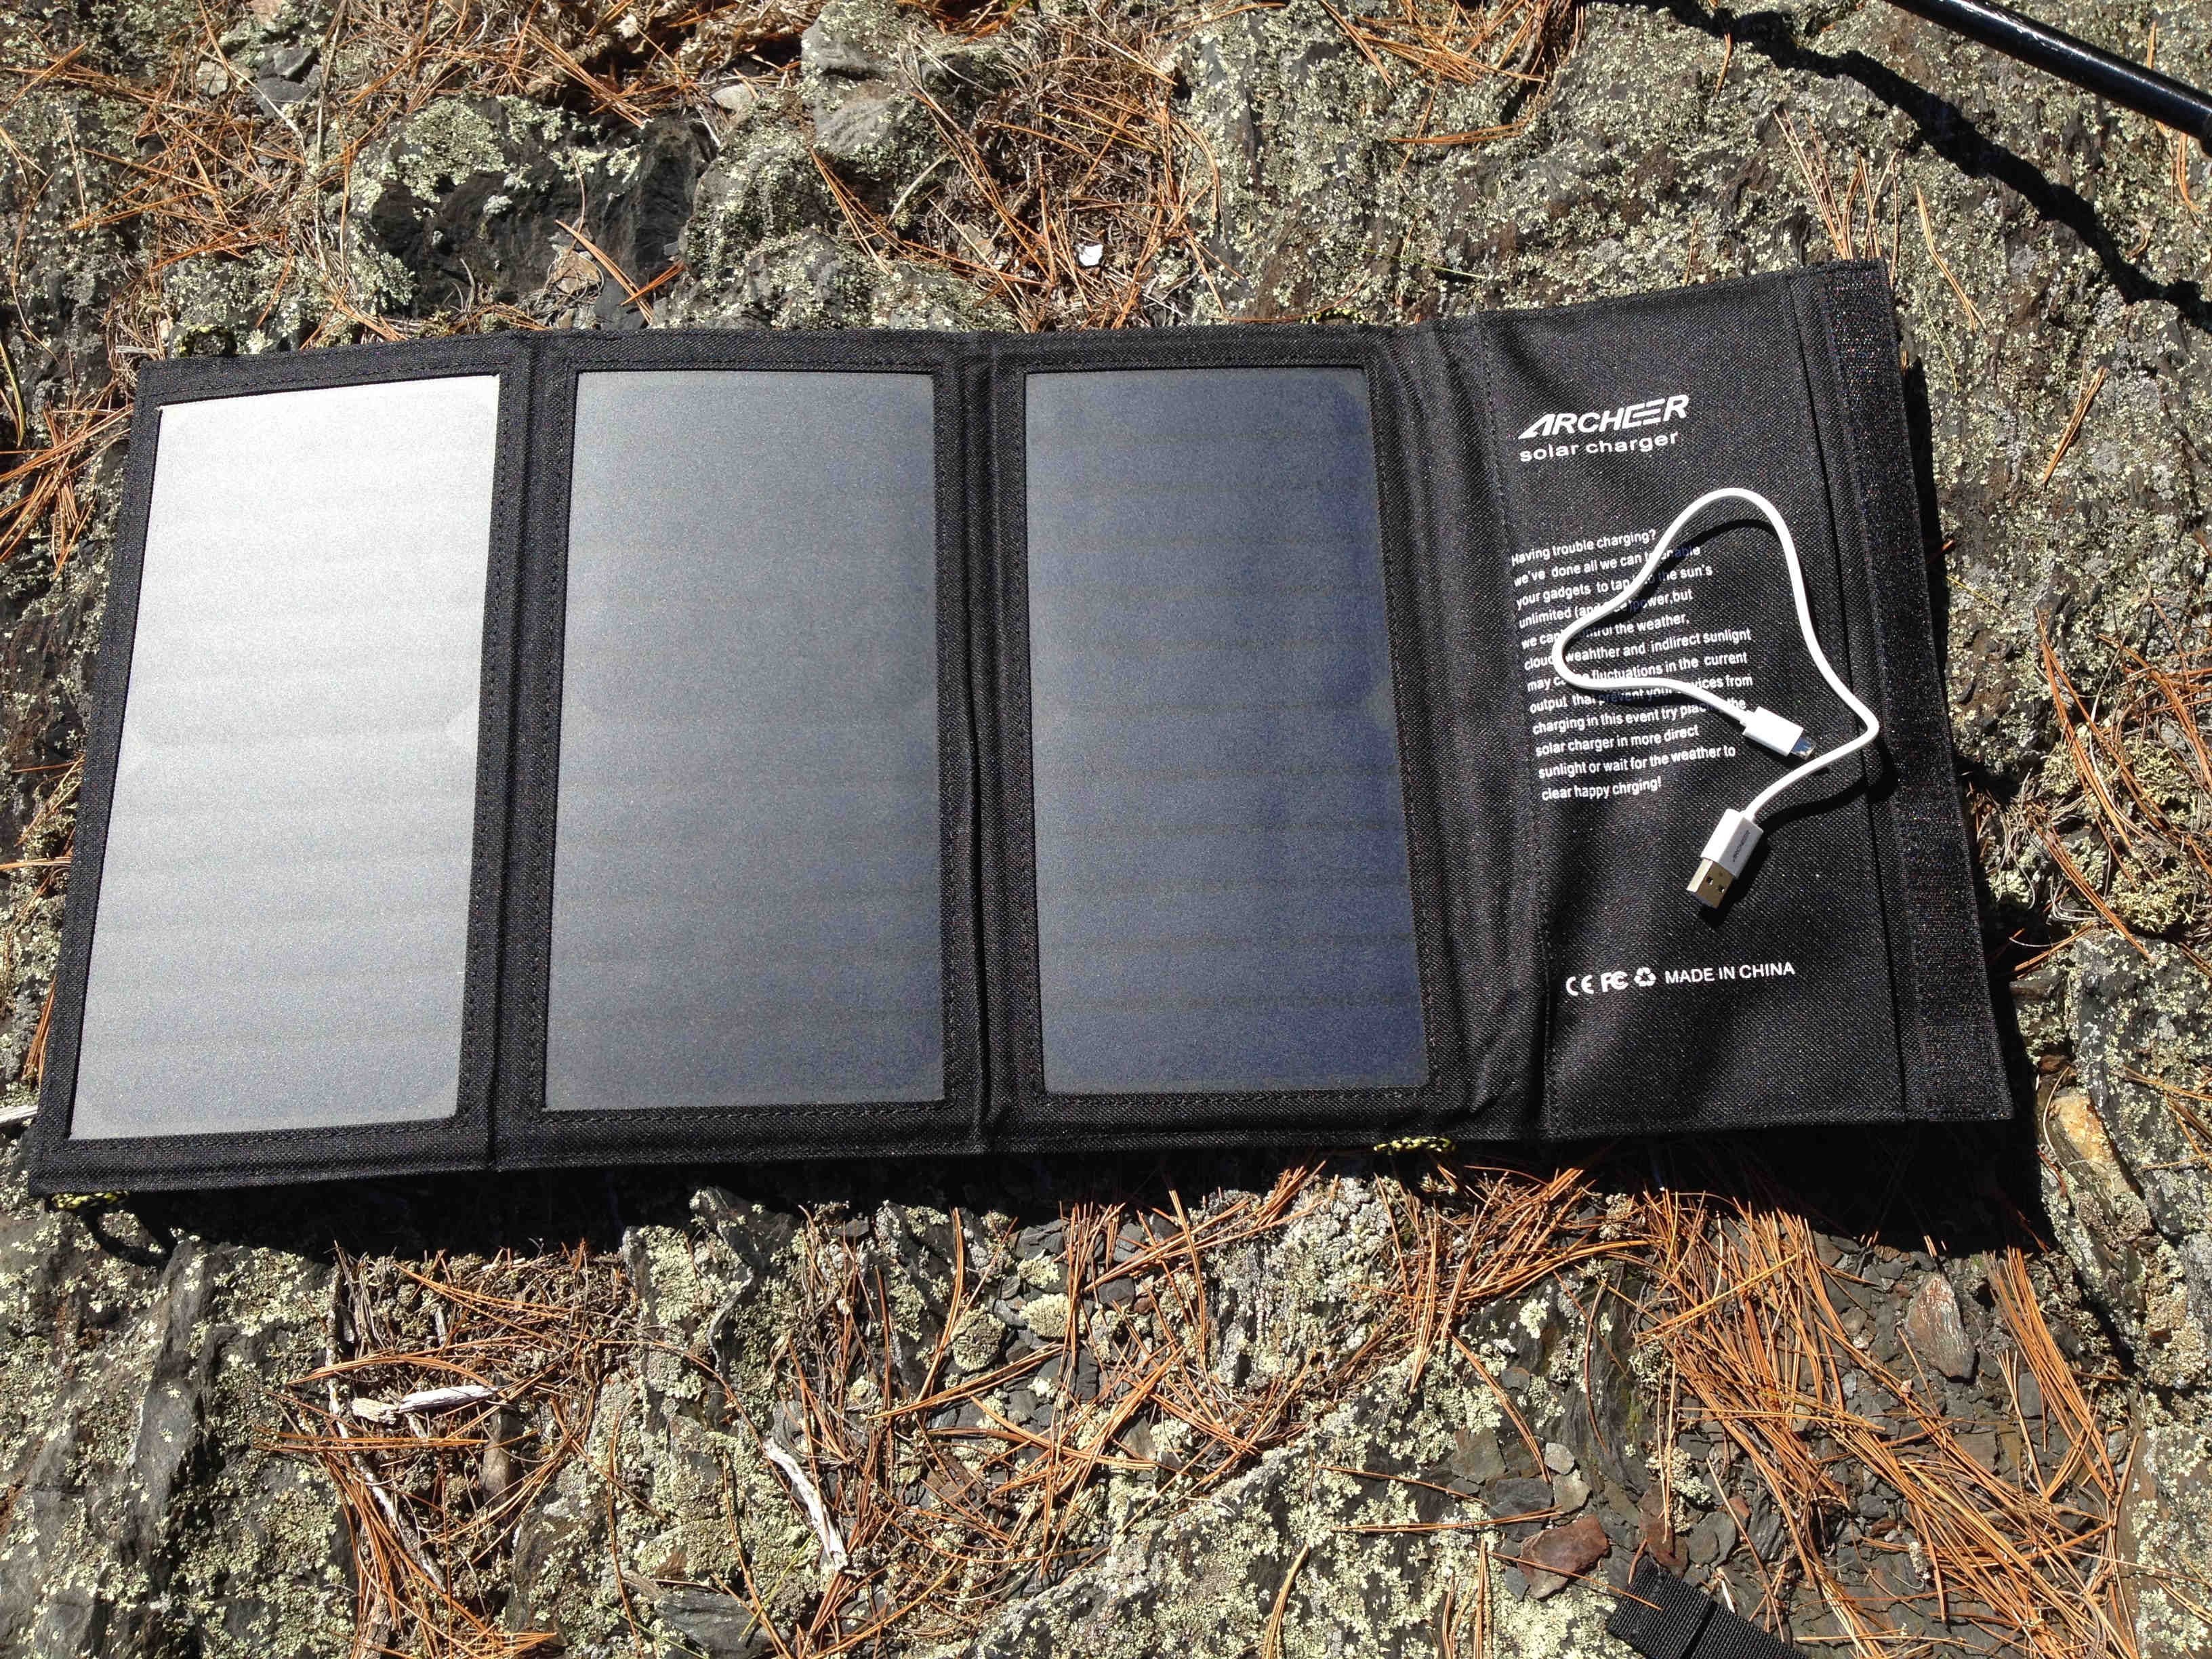 Archeer solar charger open